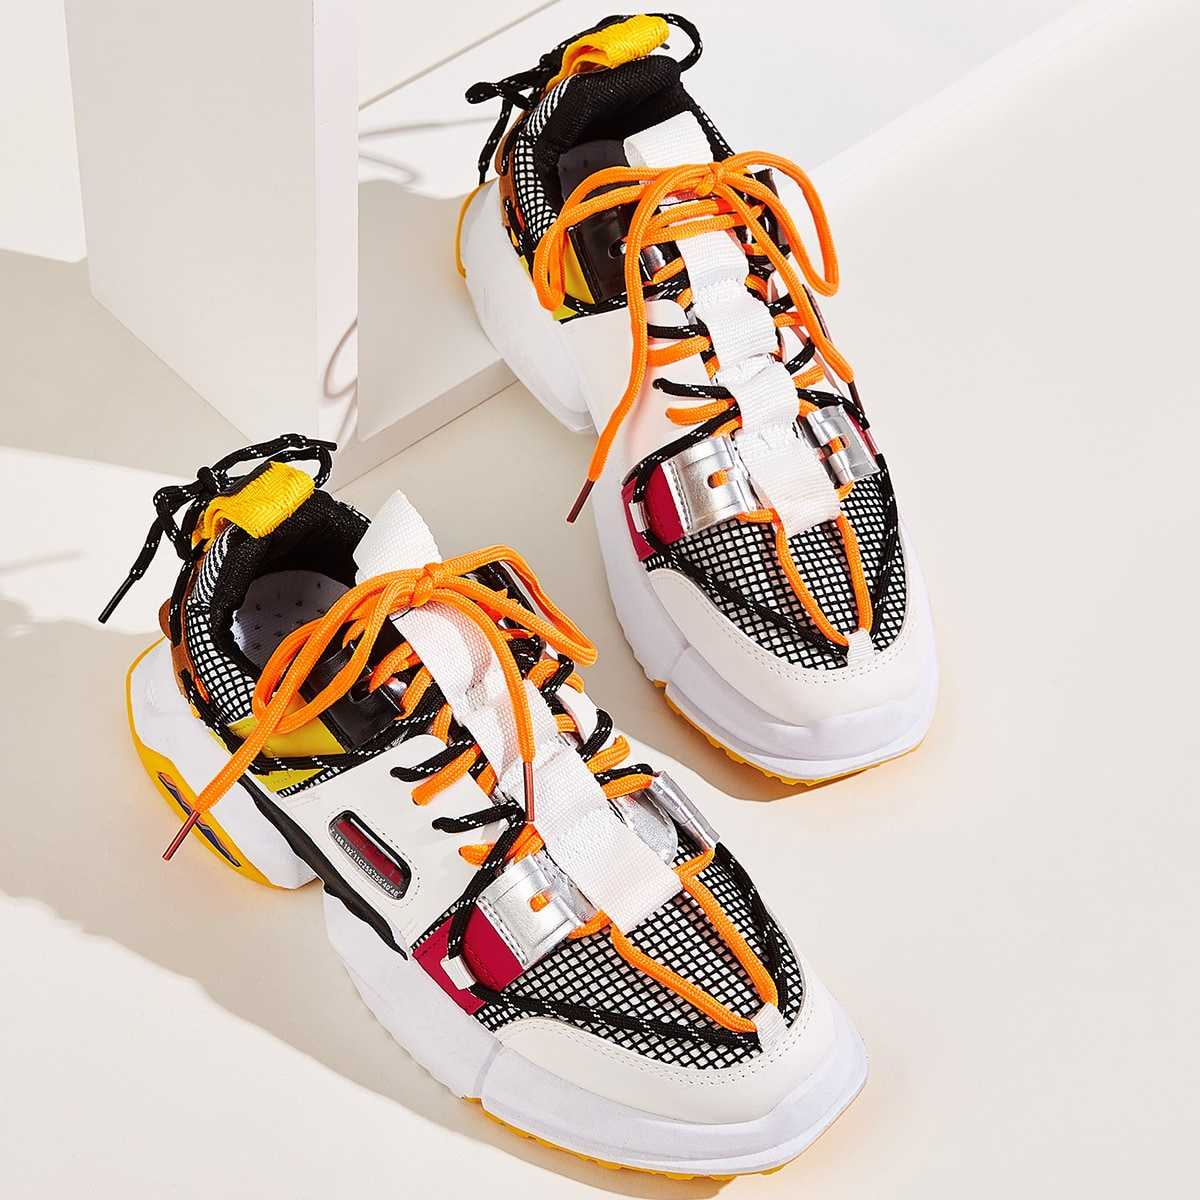 Guys Color Block Chunky Sole Trainers in Multicolor by ROMWE on GOOFASH